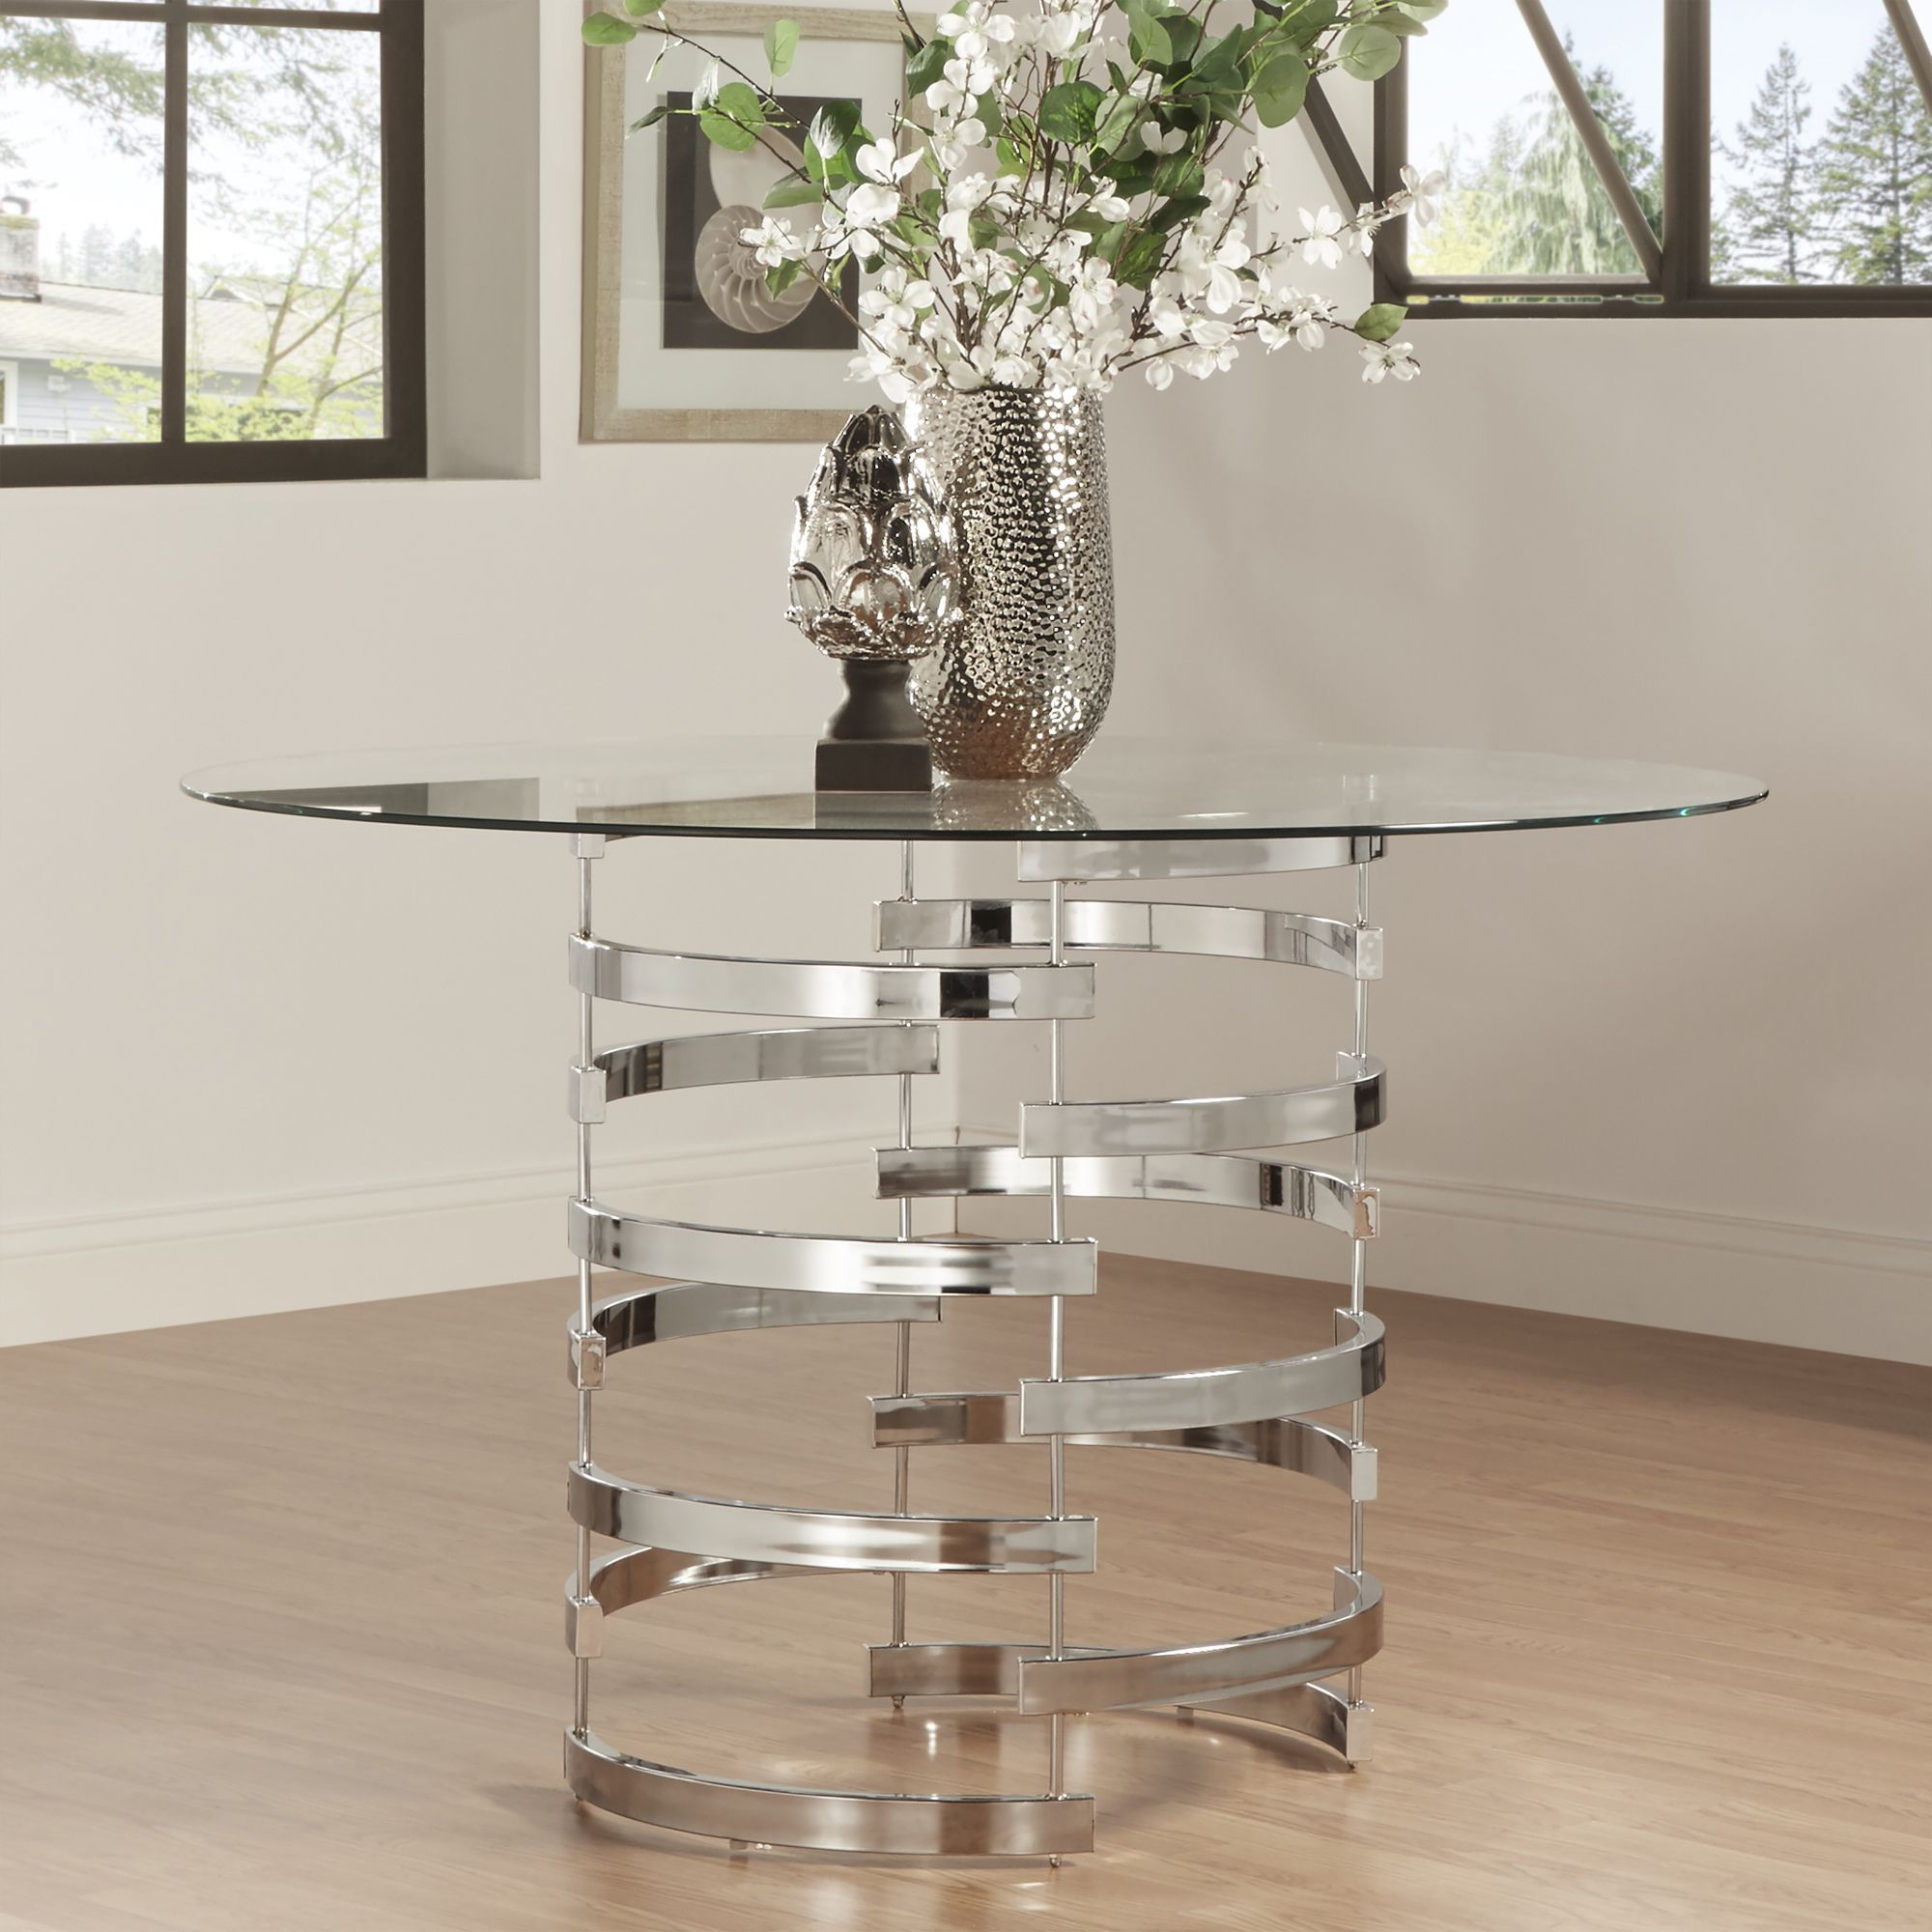 Nova Round Glass Top Vortex Iron Base Dining Table By Inspire Q Bold By Inspire Q Elegant